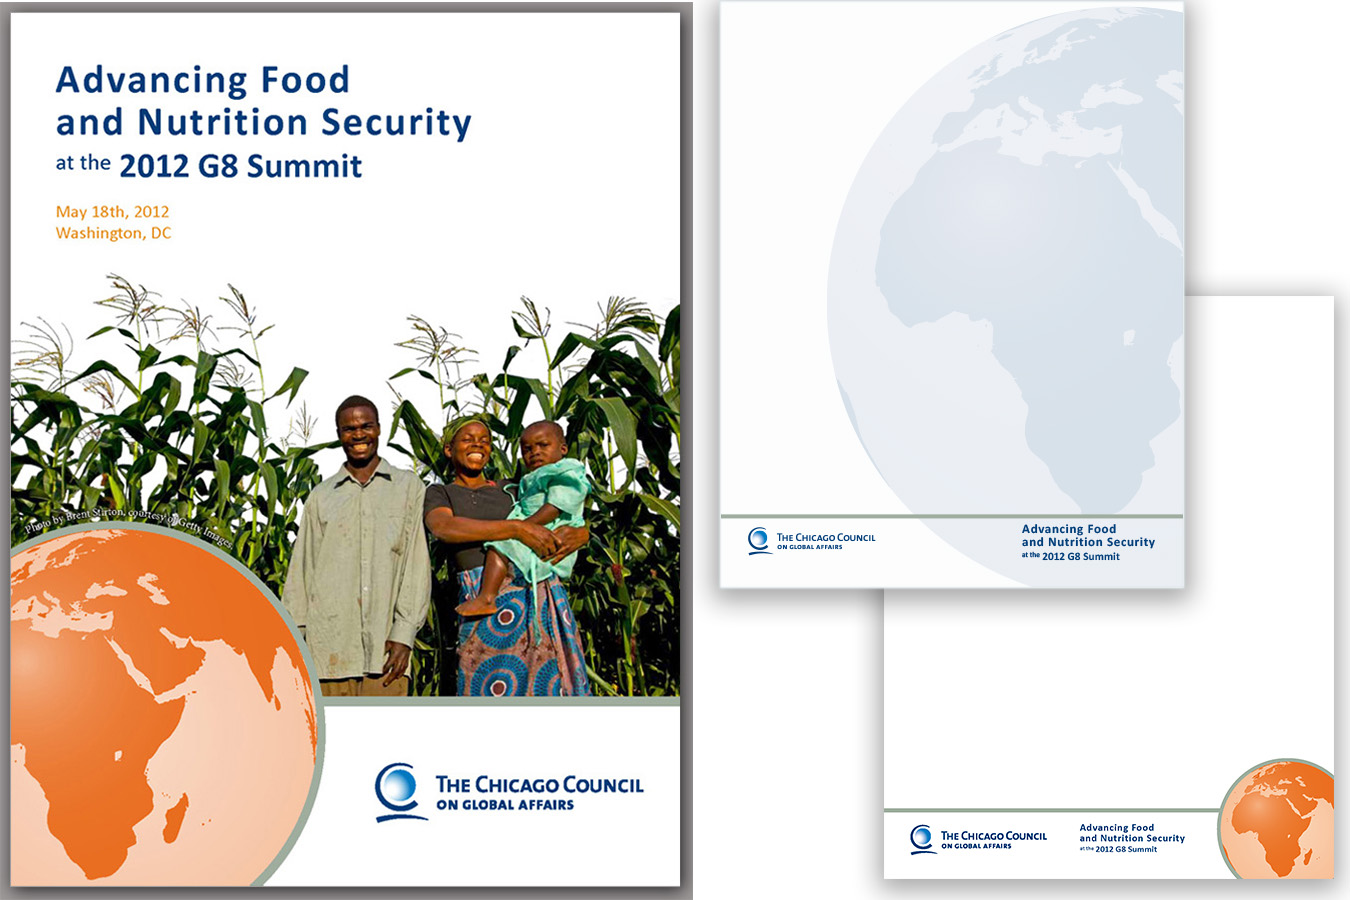 CG8 Brochure : Chicago Council G8 Conference on Food Safety Conference Brochure and Page Layouts